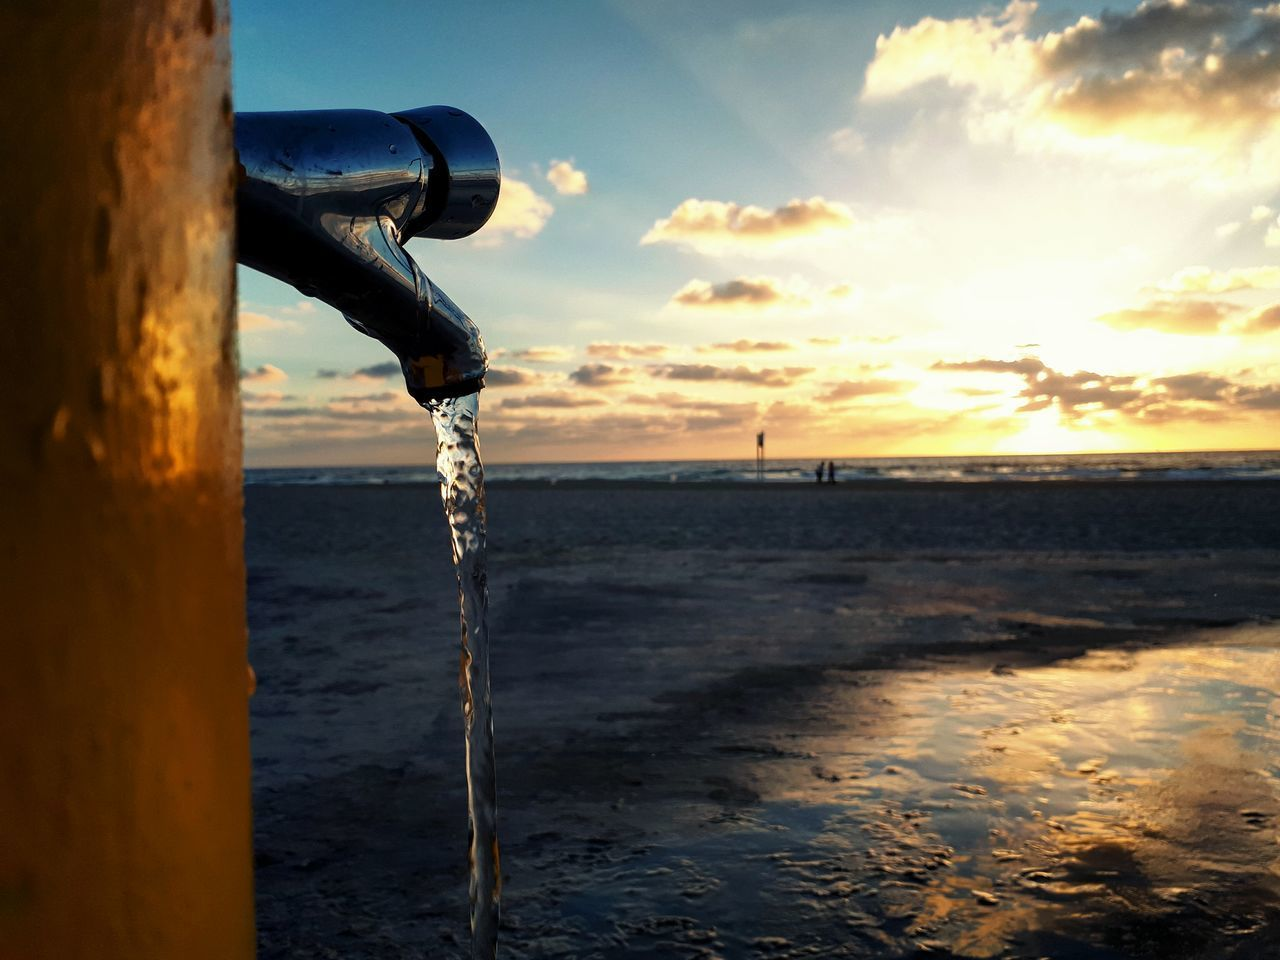 water, nature, sunset, sea, outdoors, sky, beauty in nature, no people, scenics, tranquility, motion, beach, cold temperature, day, close-up, dripping